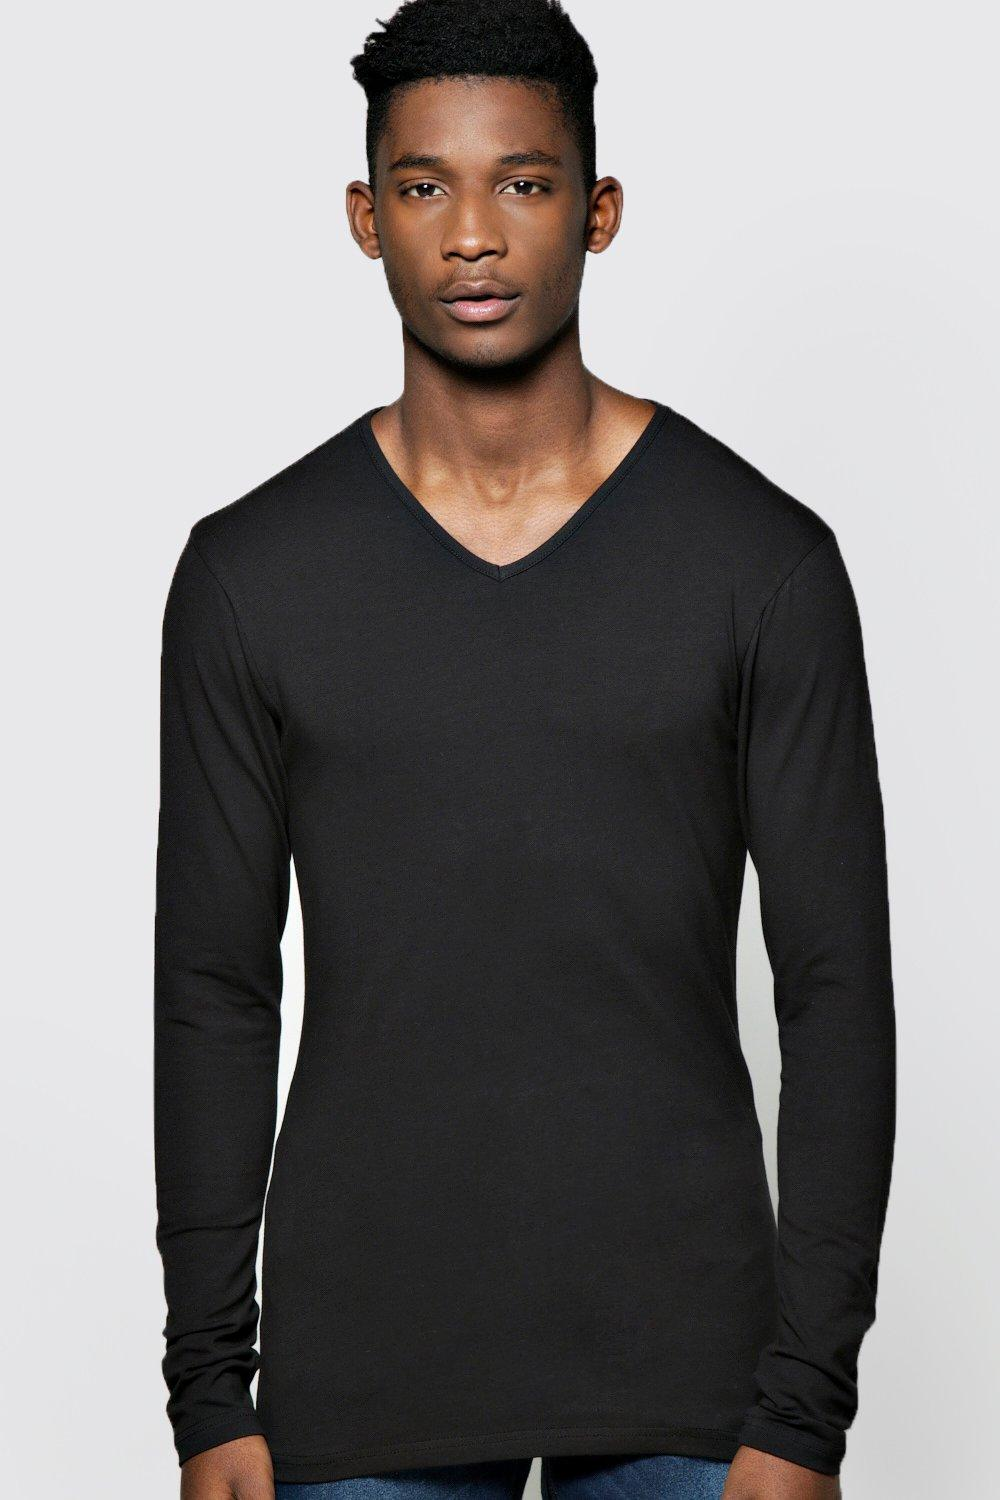 Extreme Muscle Fit Long Sleeve V Neck TShirt